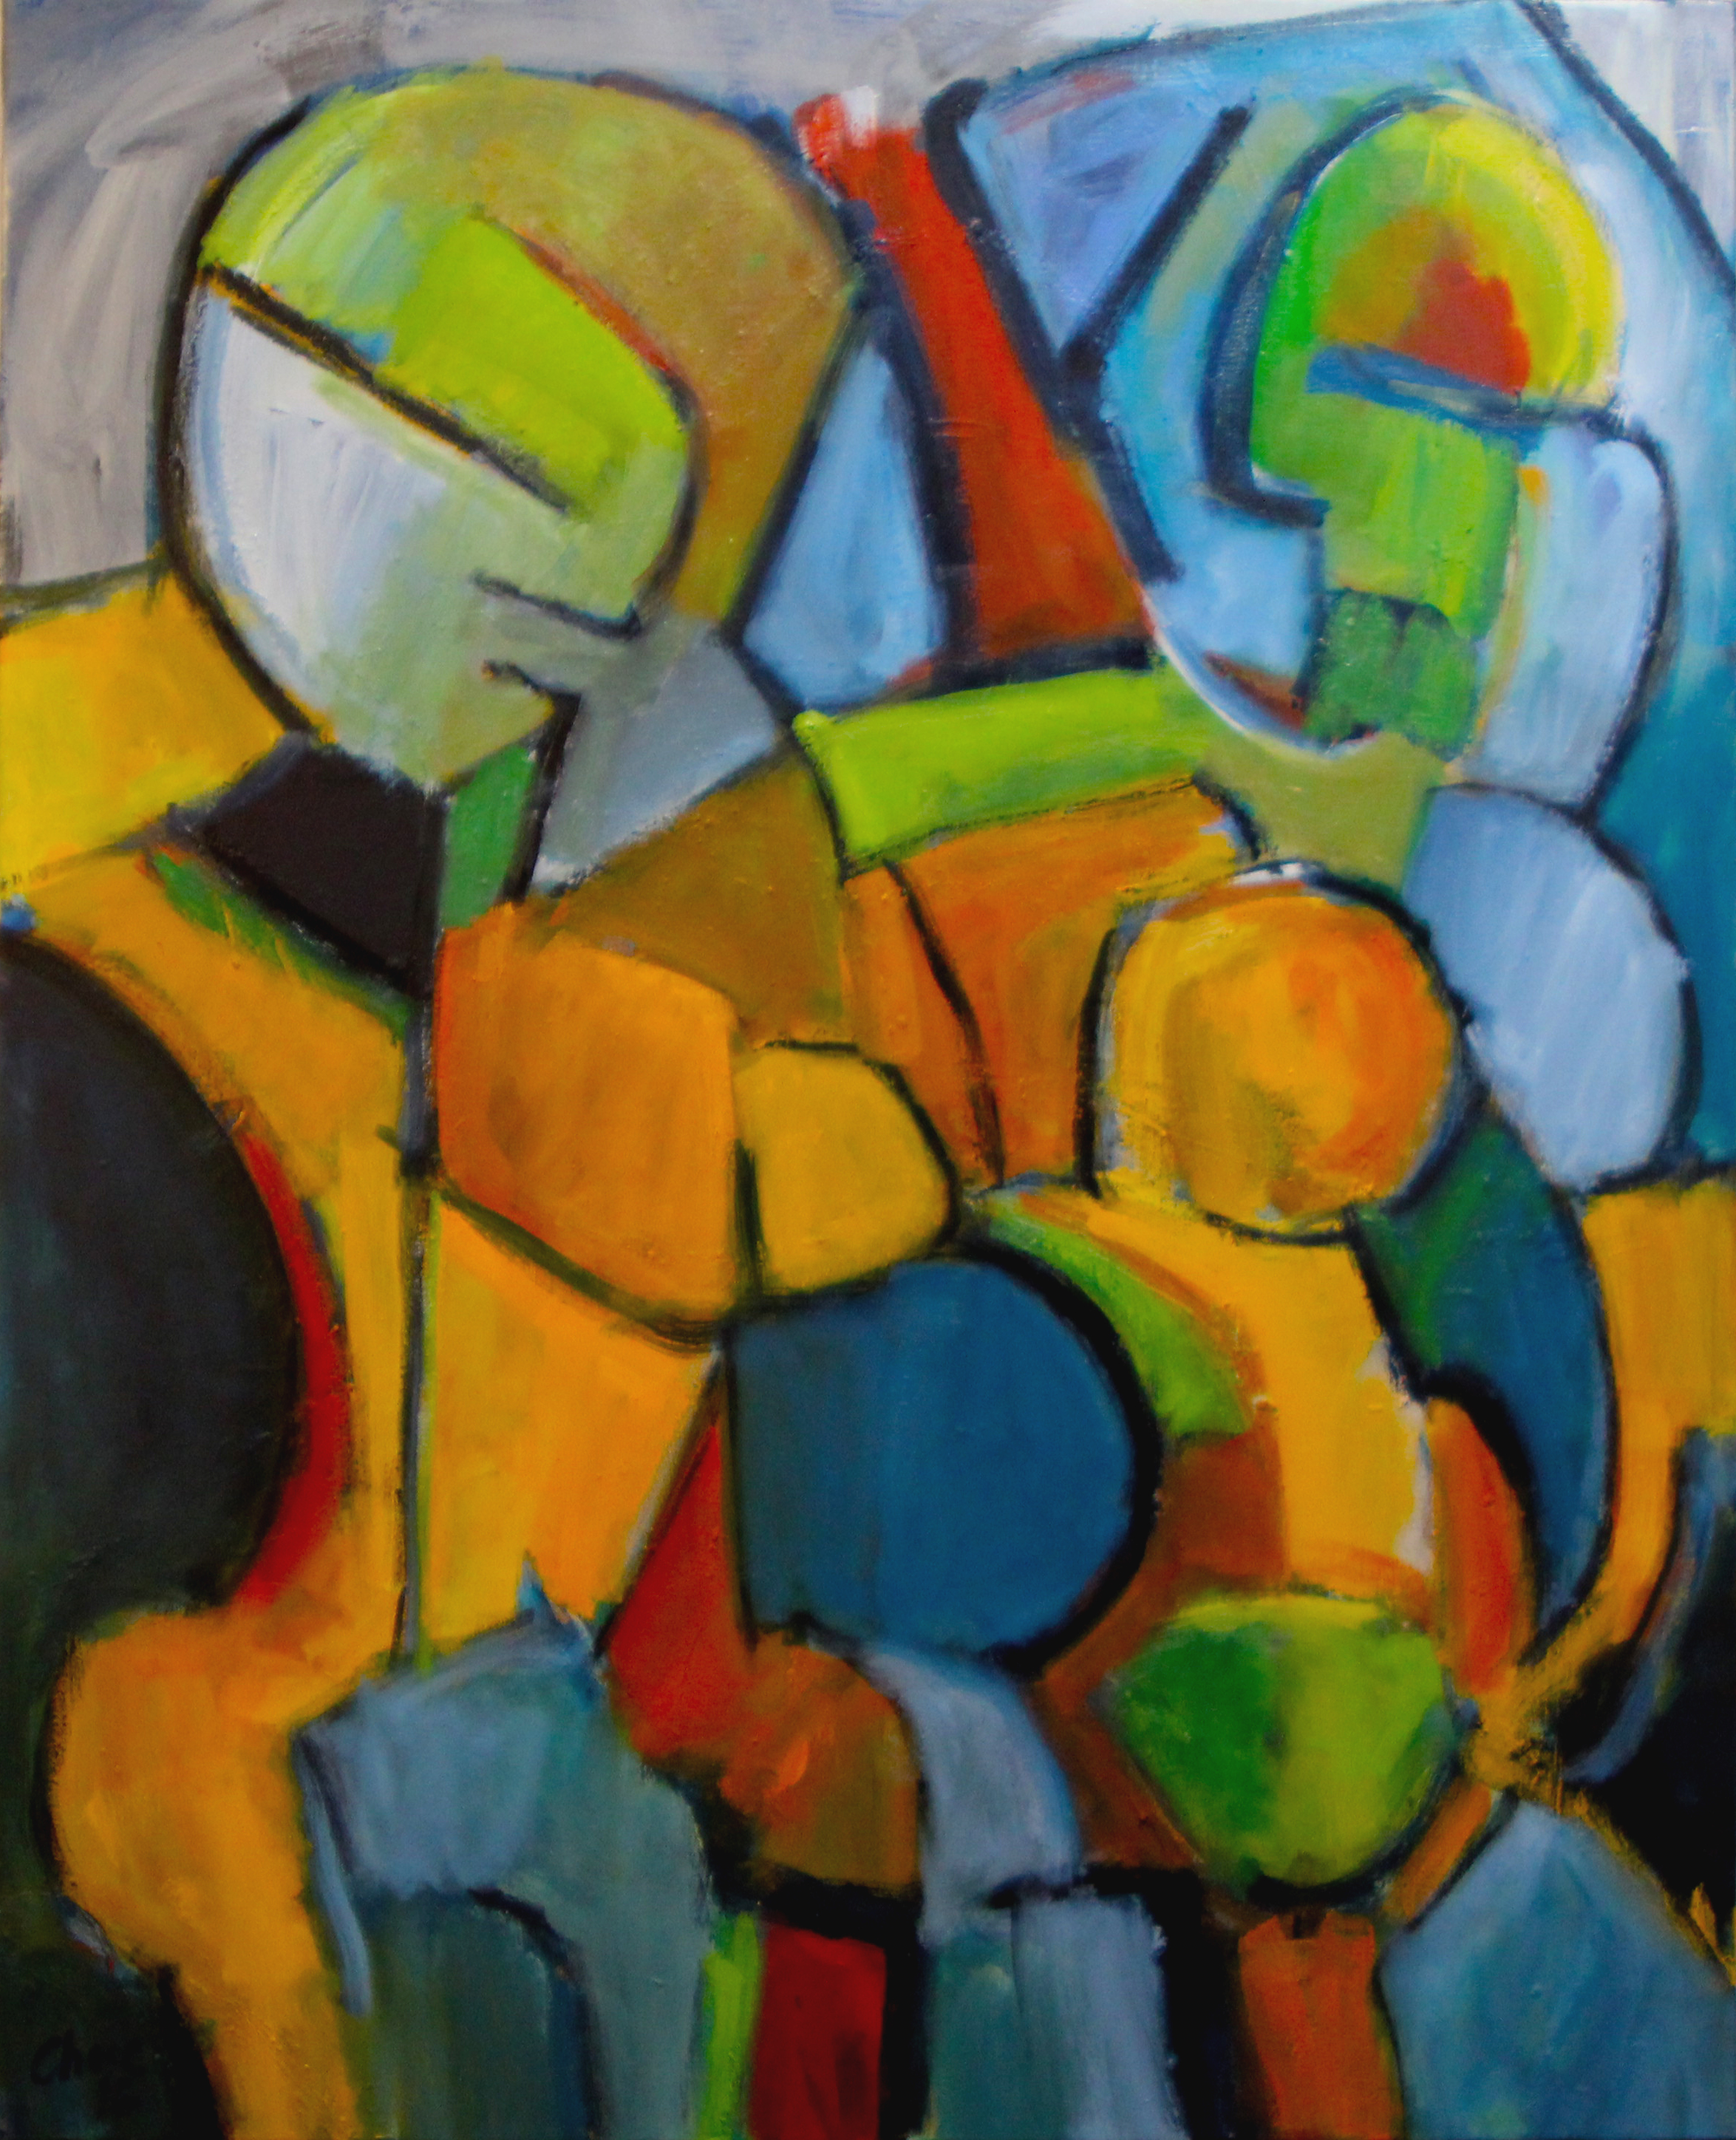 Two Women Embracing artwork by Chase Bailey - art listed for sale on Artplode